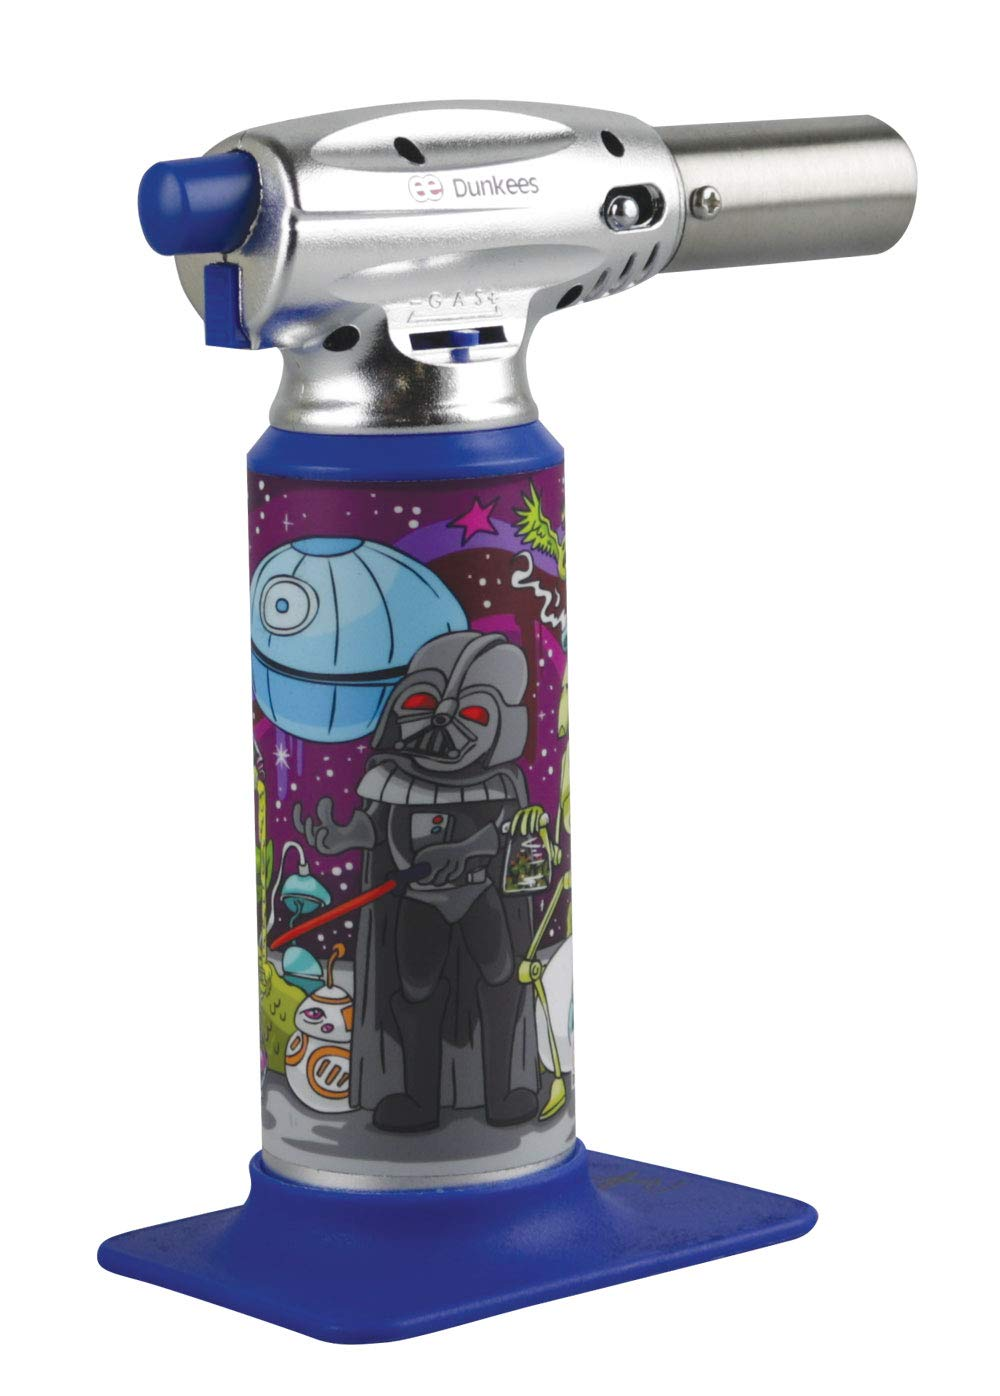 Dunkees Butane Torch Lighter - 7'' / Assorted Colors & Designs (Dab Wars) by Custom Torches (Image #3)